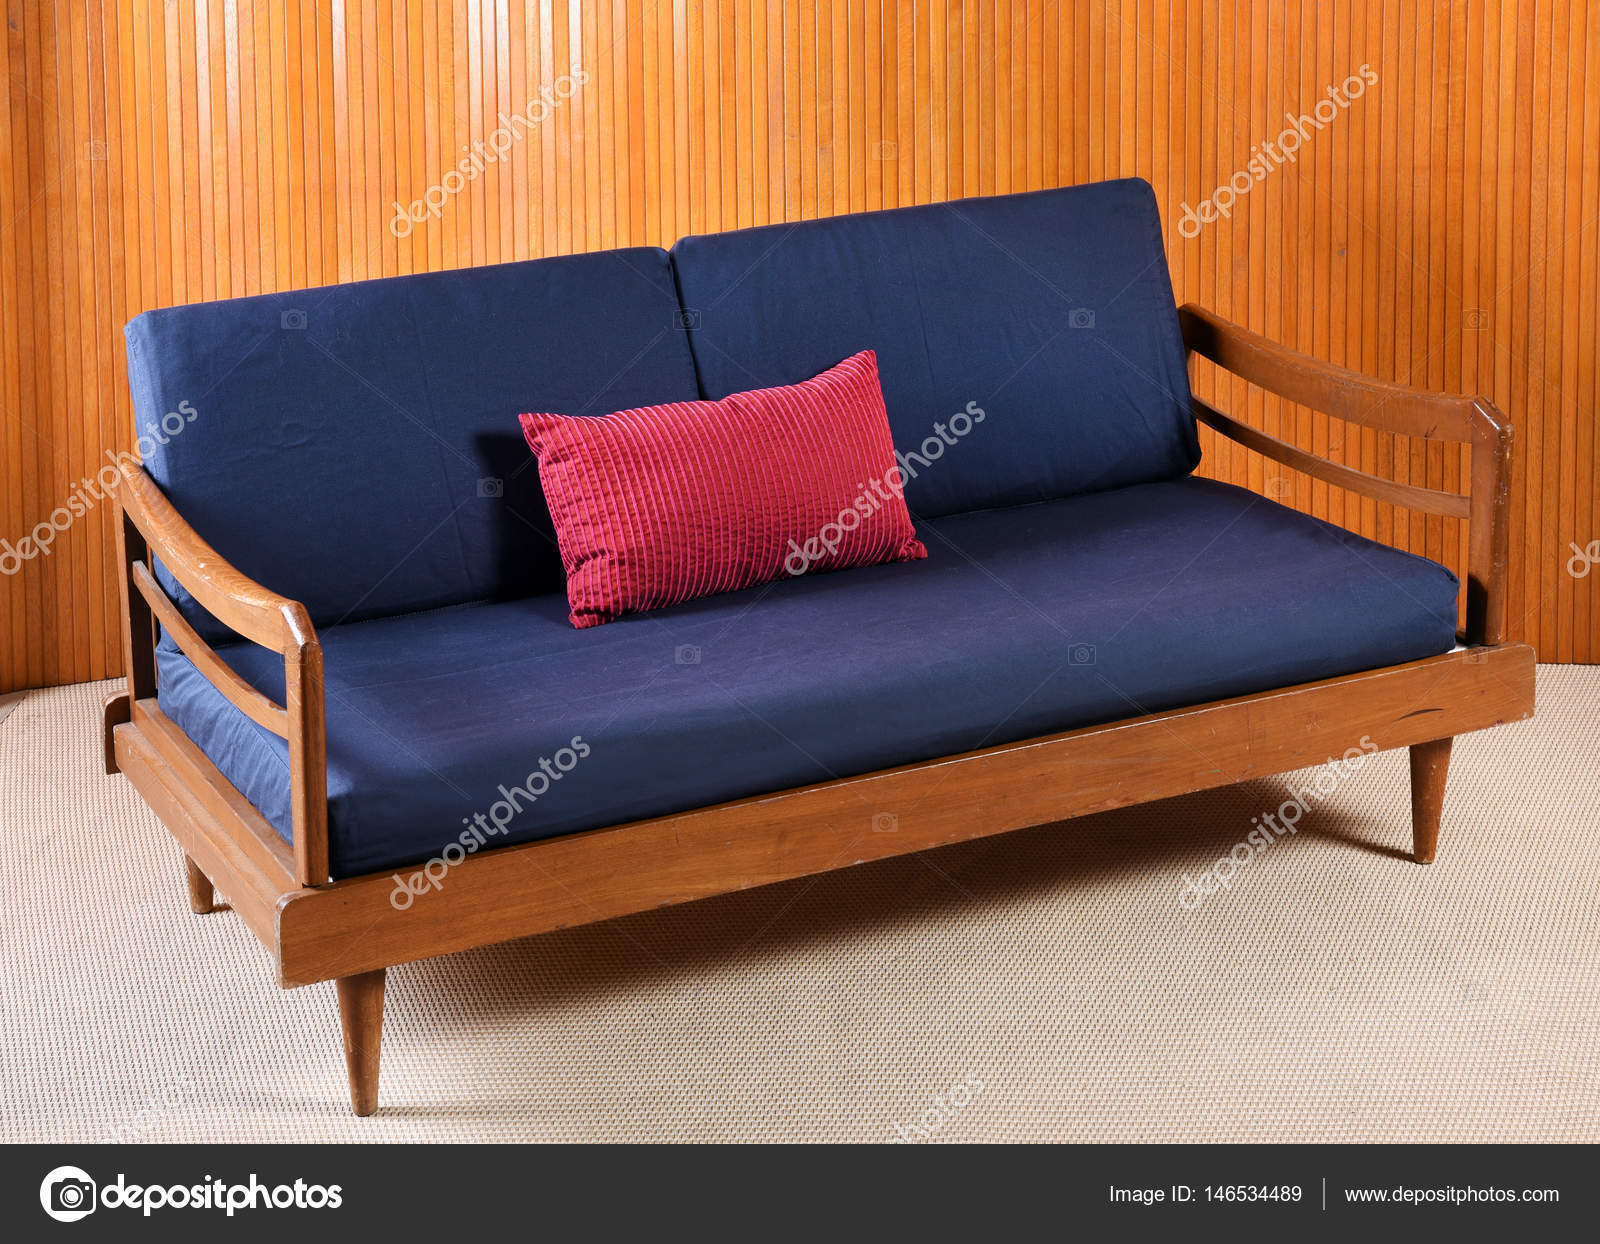 Retro Cushions Retro Sofa With Navy Blue Cushions In Living Room Stock Photo